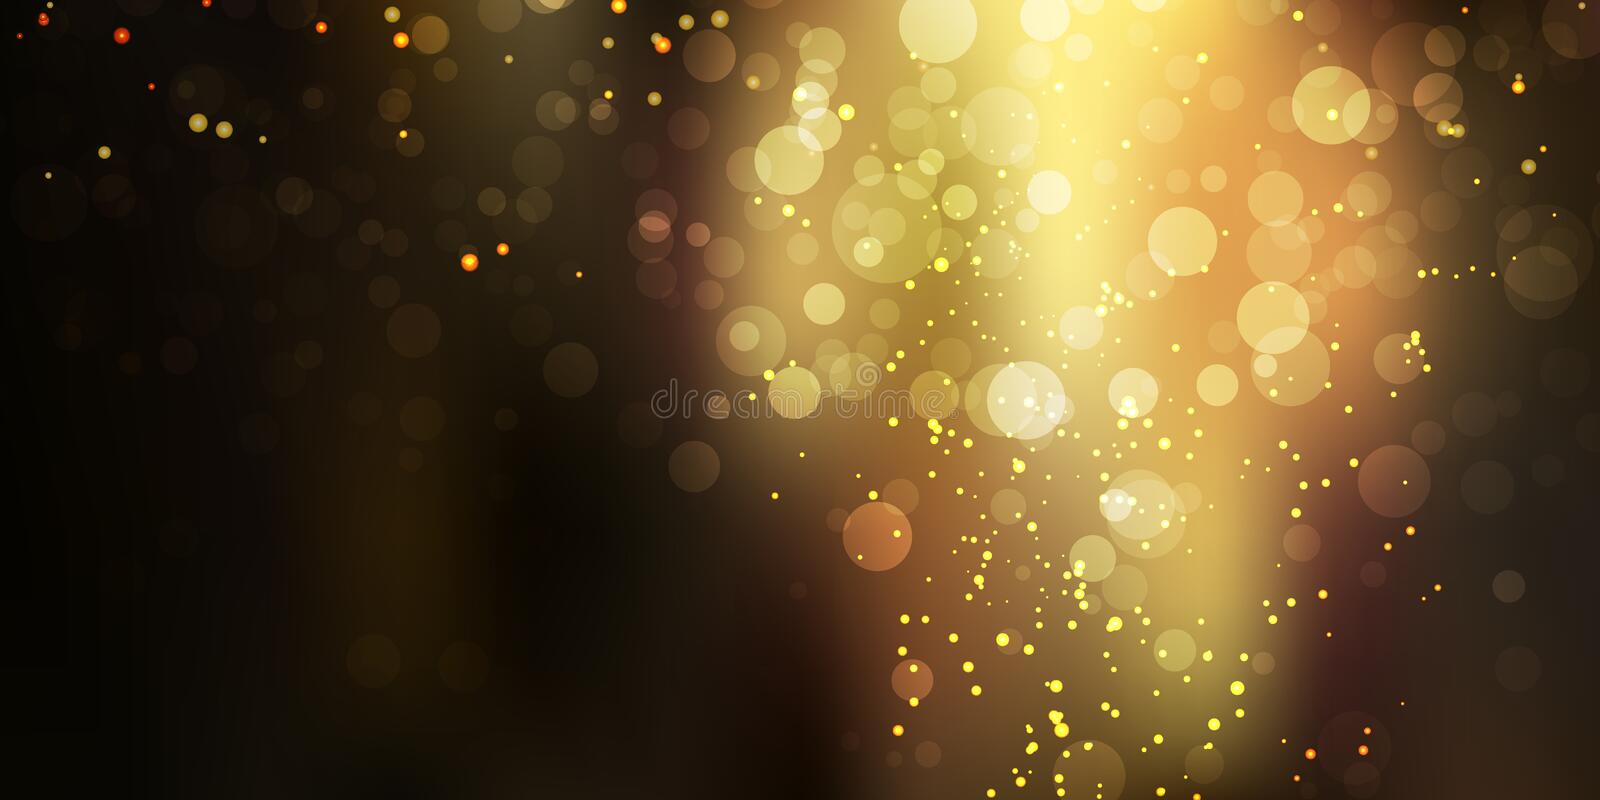 Gold glittering sparkle stardust on black background with bokeh lights stock illustration